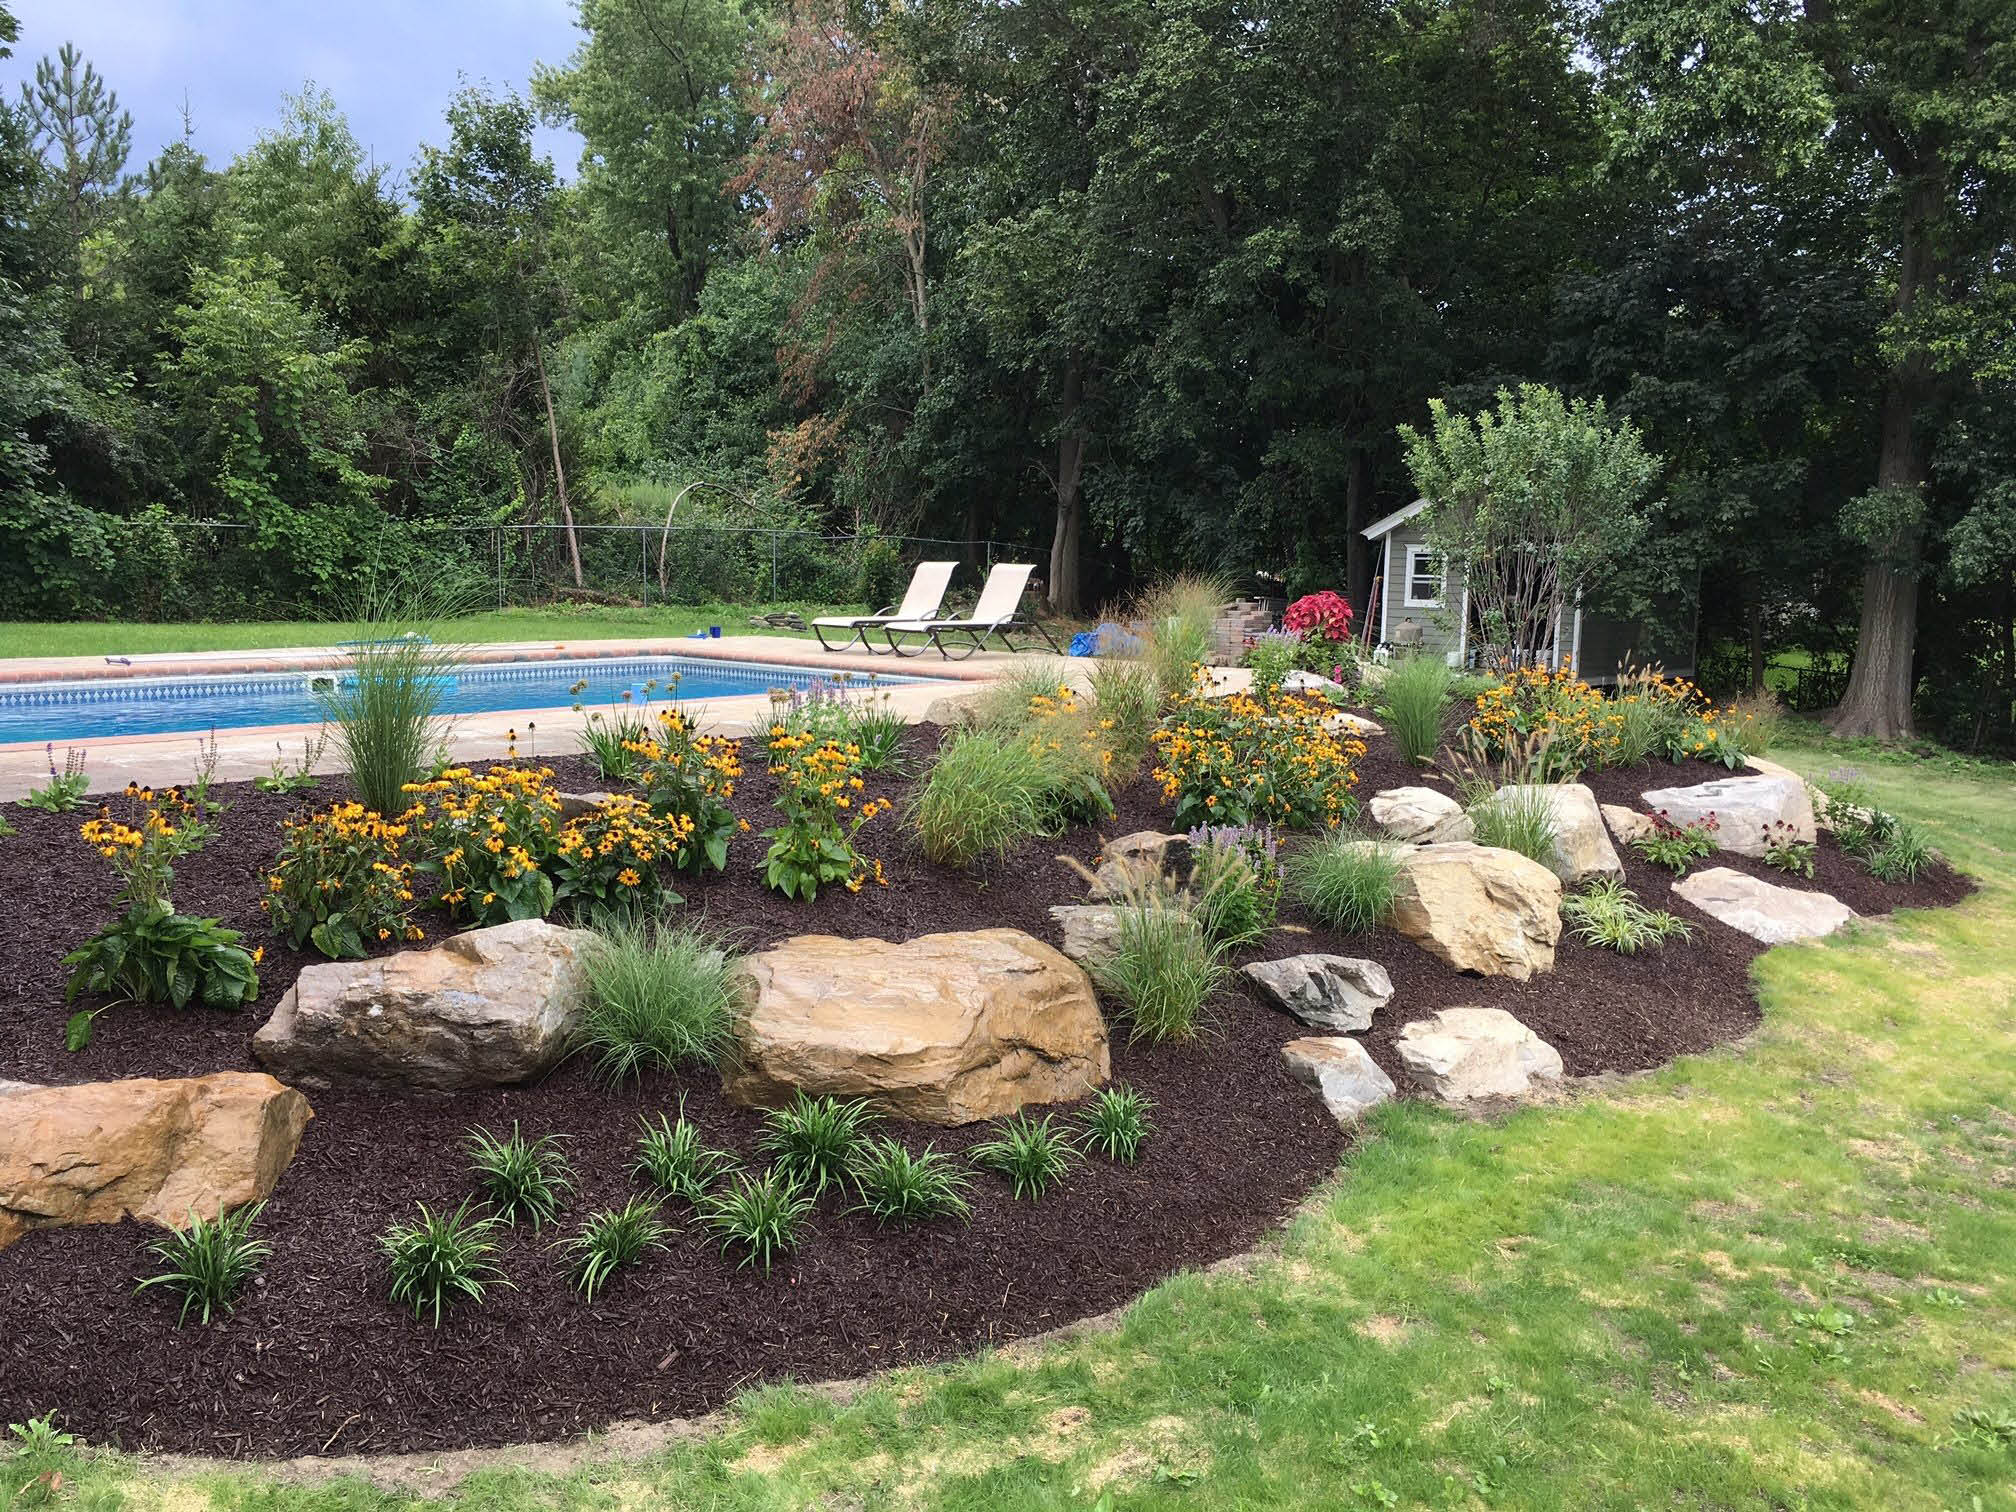 Landscape design performed by Red Cedar Arborists & Landscapers in Putnam County, NY